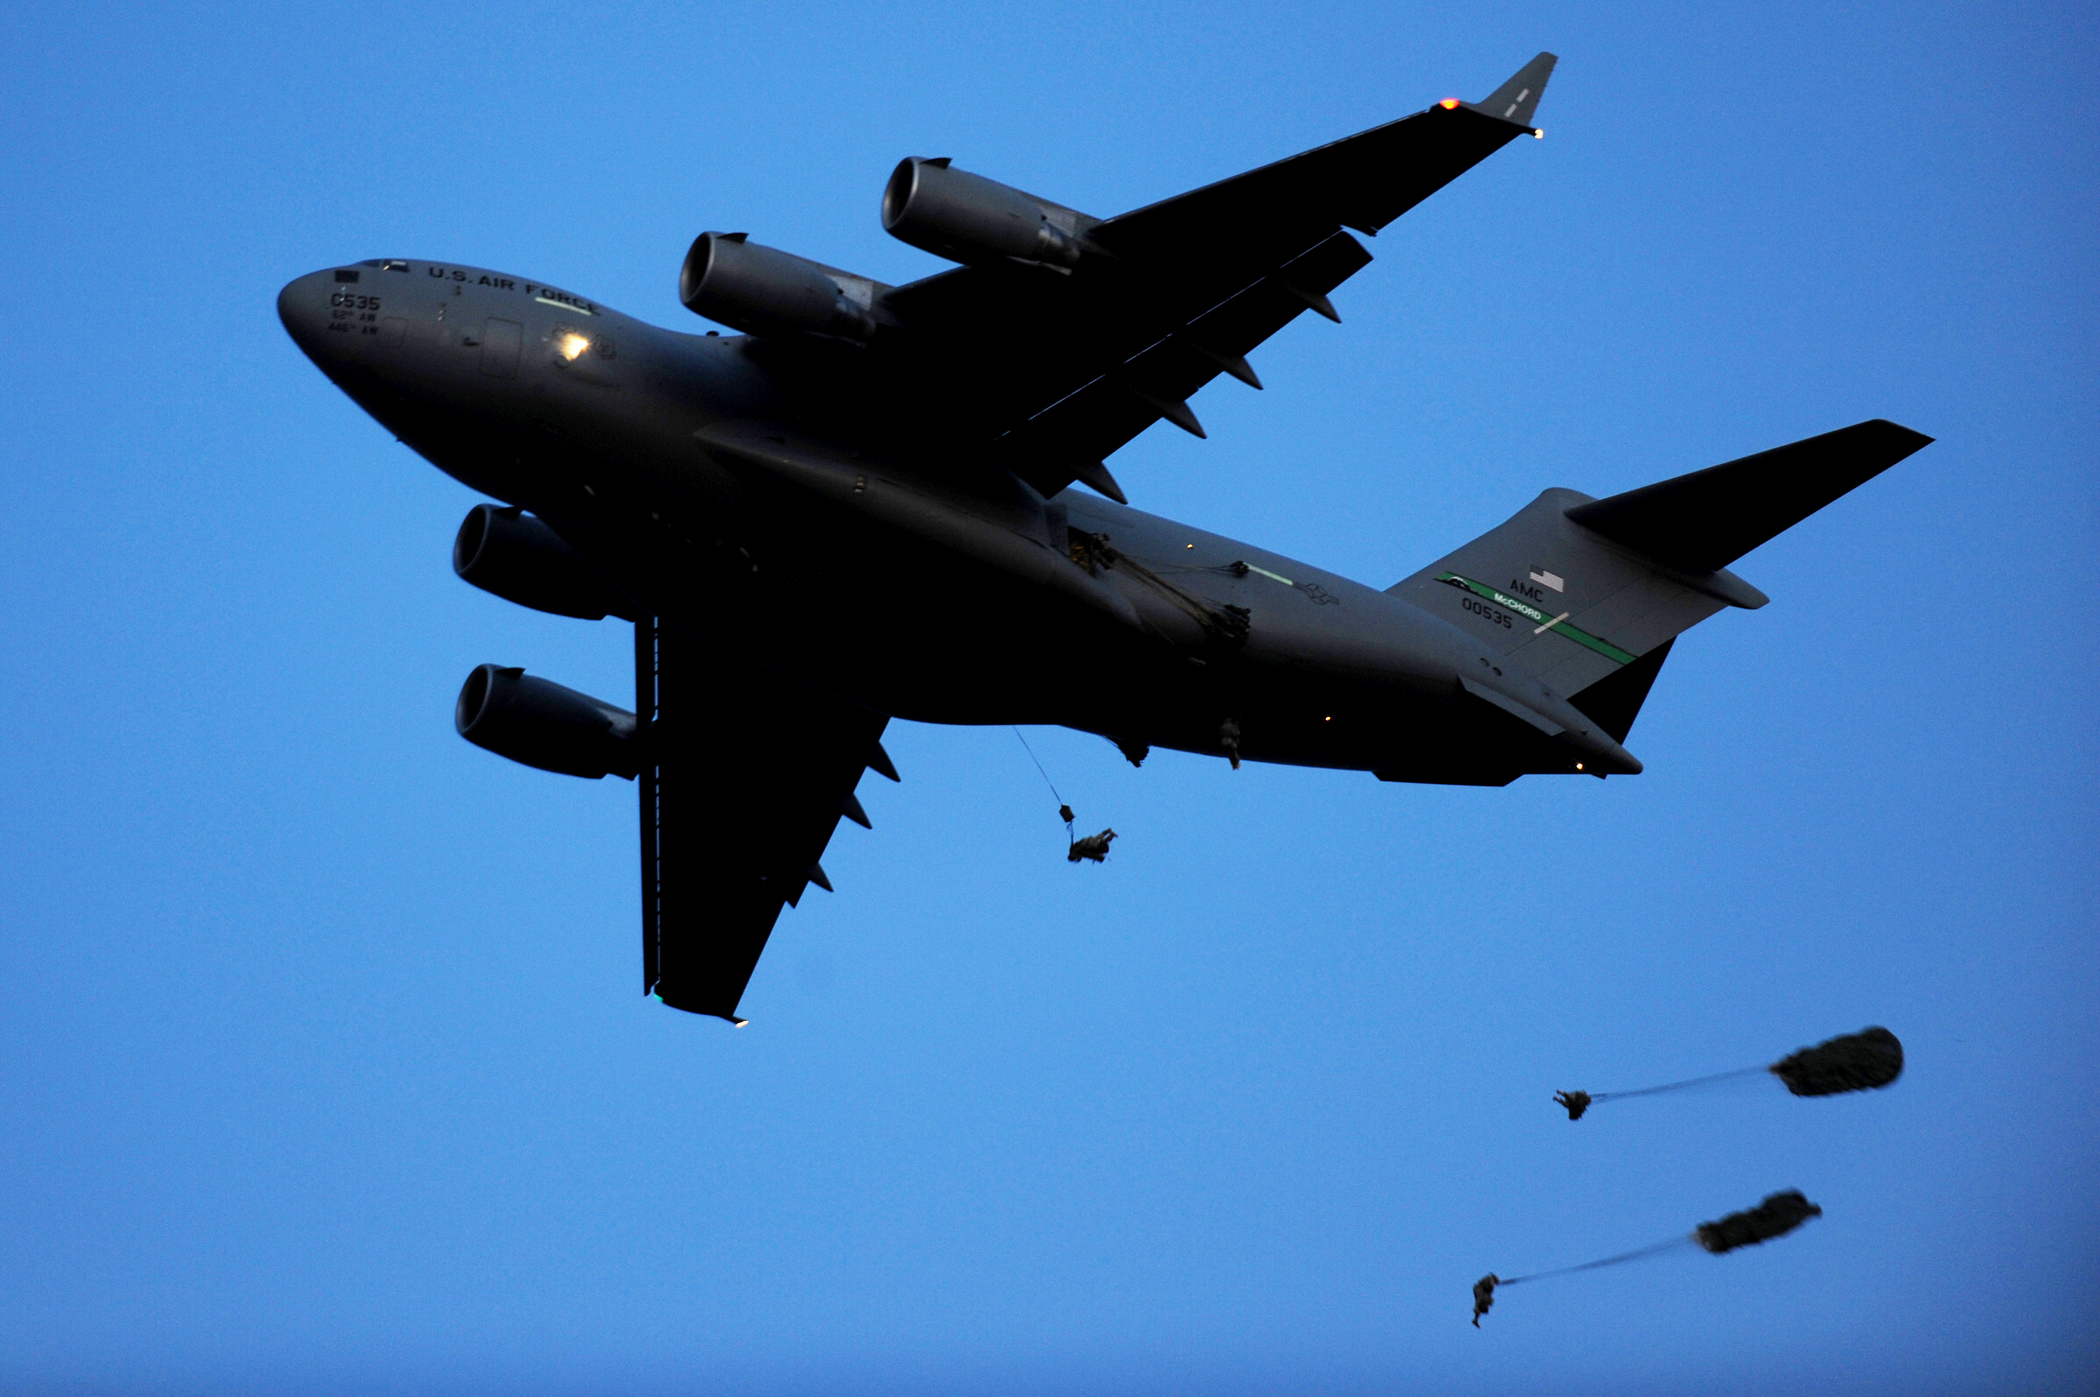 Two paratroopers dropping from a C-17 during an exercise